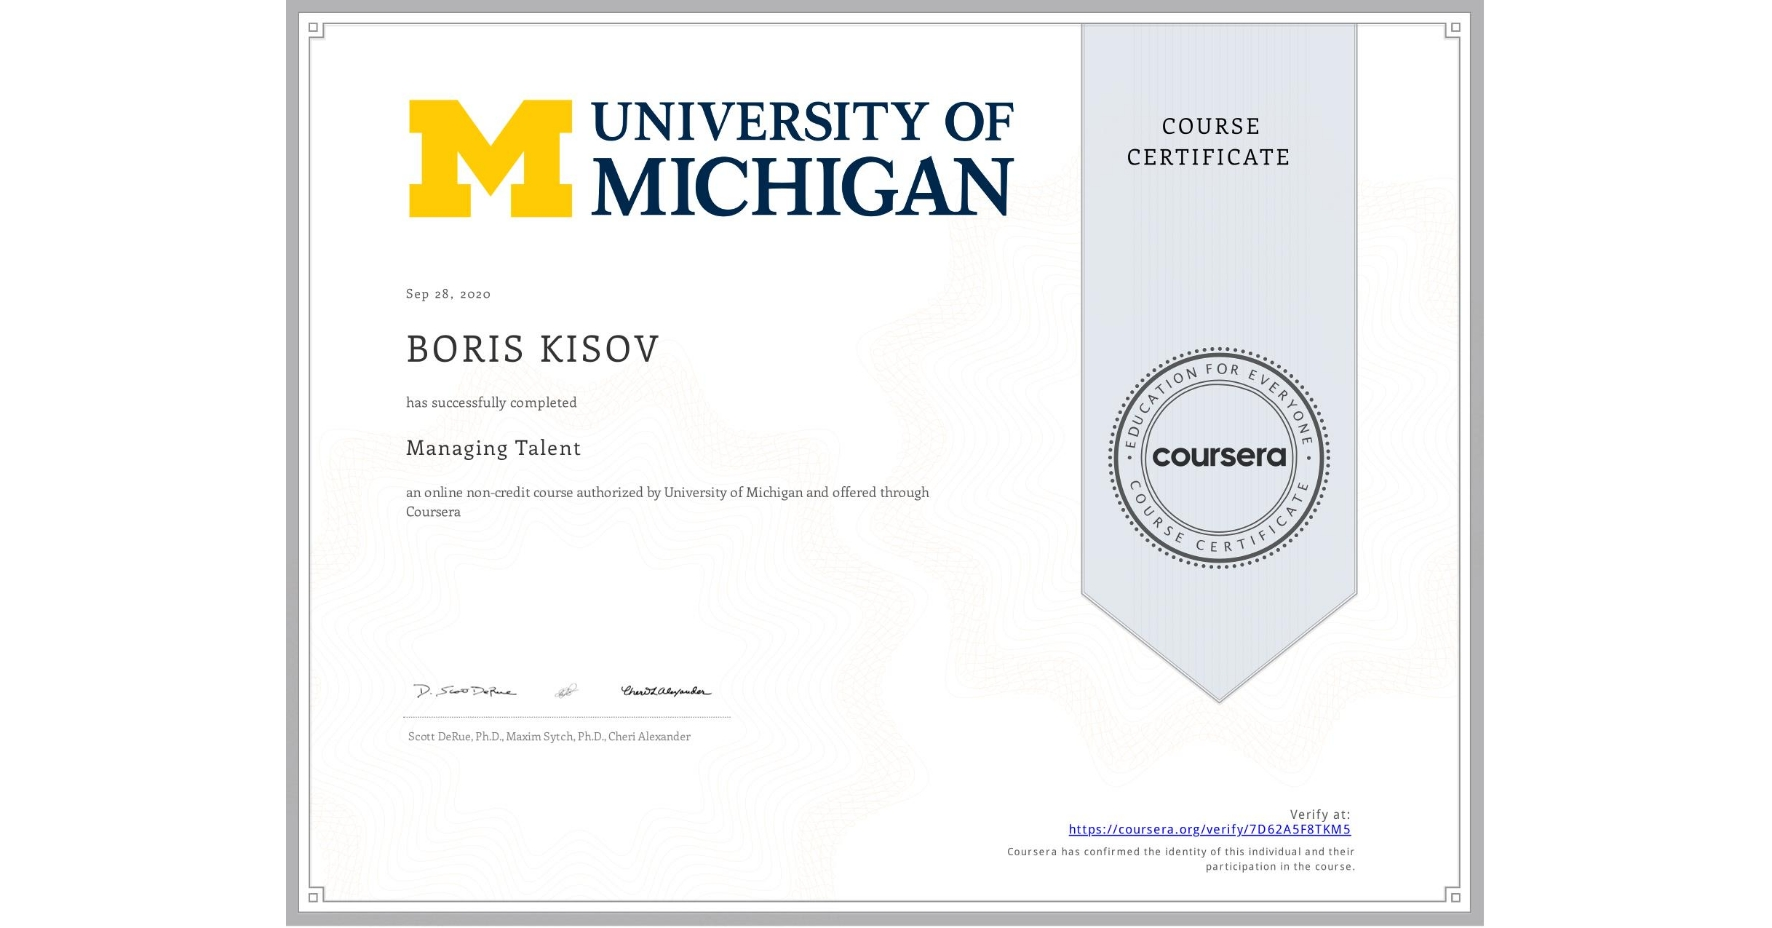 View certificate for BORIS KISOV, Managing Talent, an online non-credit course authorized by University of Michigan and offered through Coursera